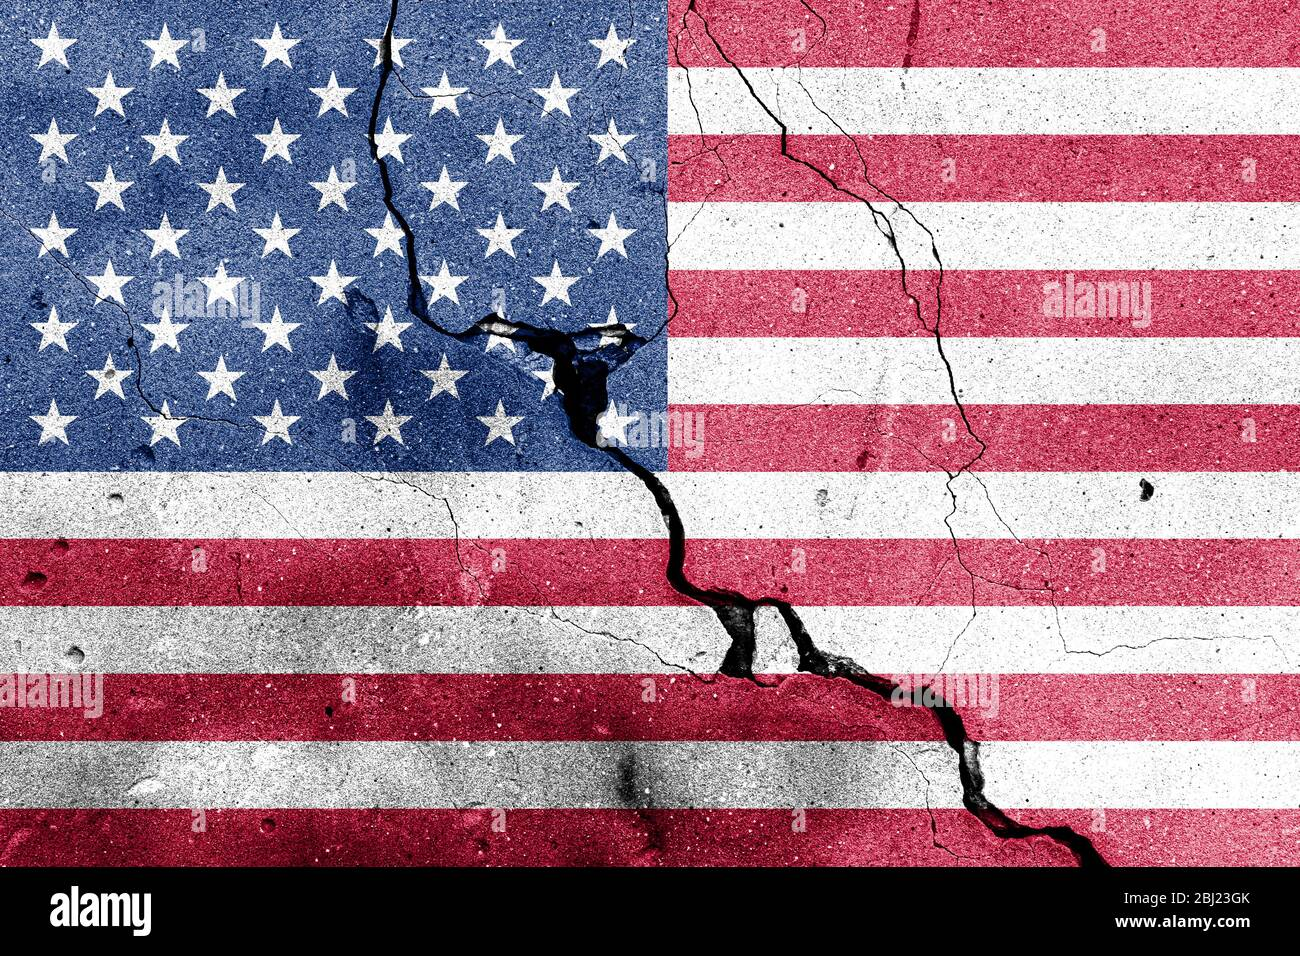 USA flag on cracked concrete wall. The concept of crisis, default, economic collapse, pandemic, conflict, terrorism or other problems in the country. Stock Photo